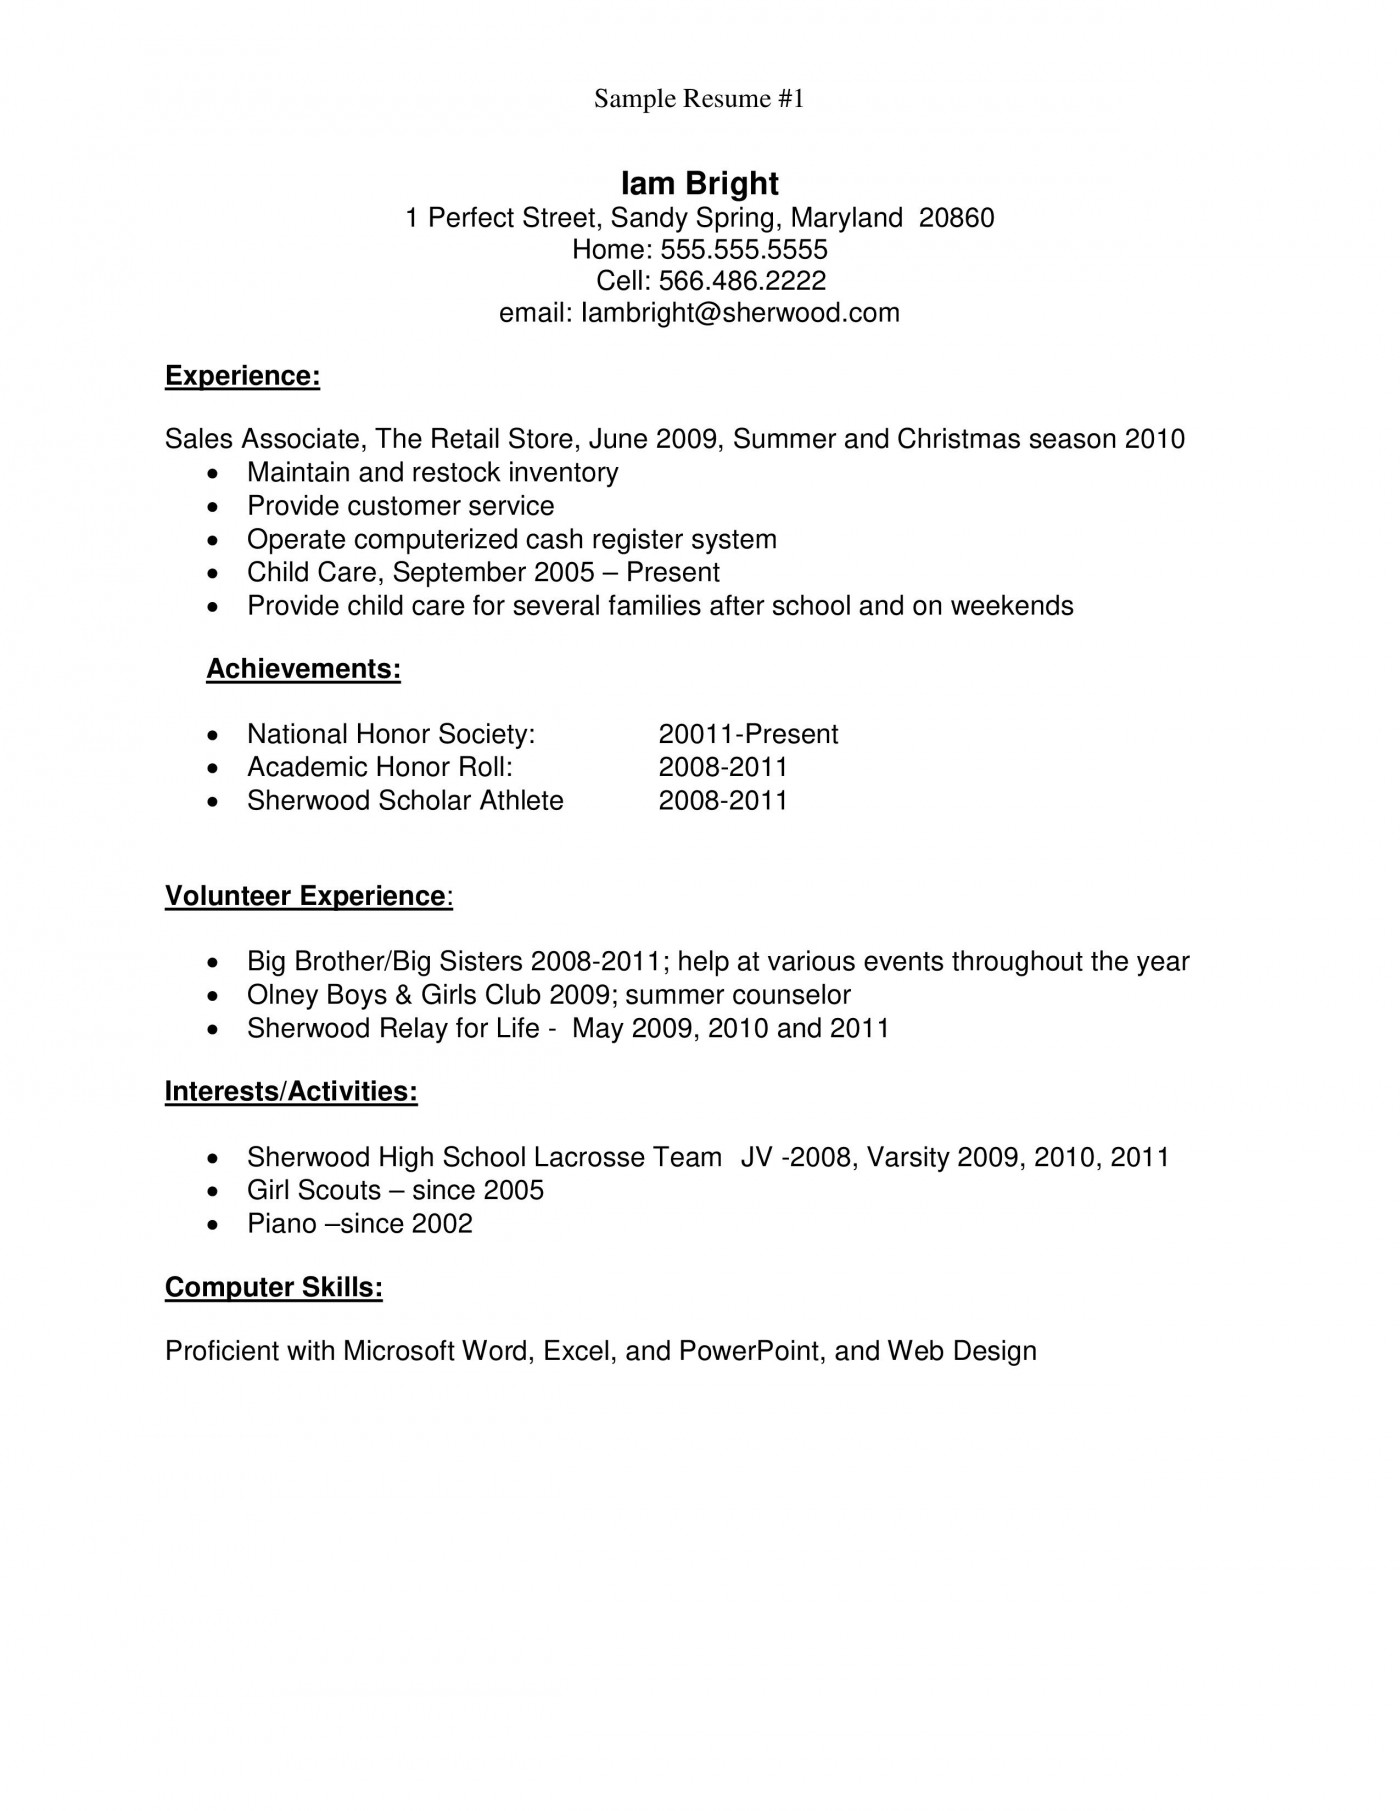 001 Fascinating Resume Template High School Student Image  Sample First Job1400